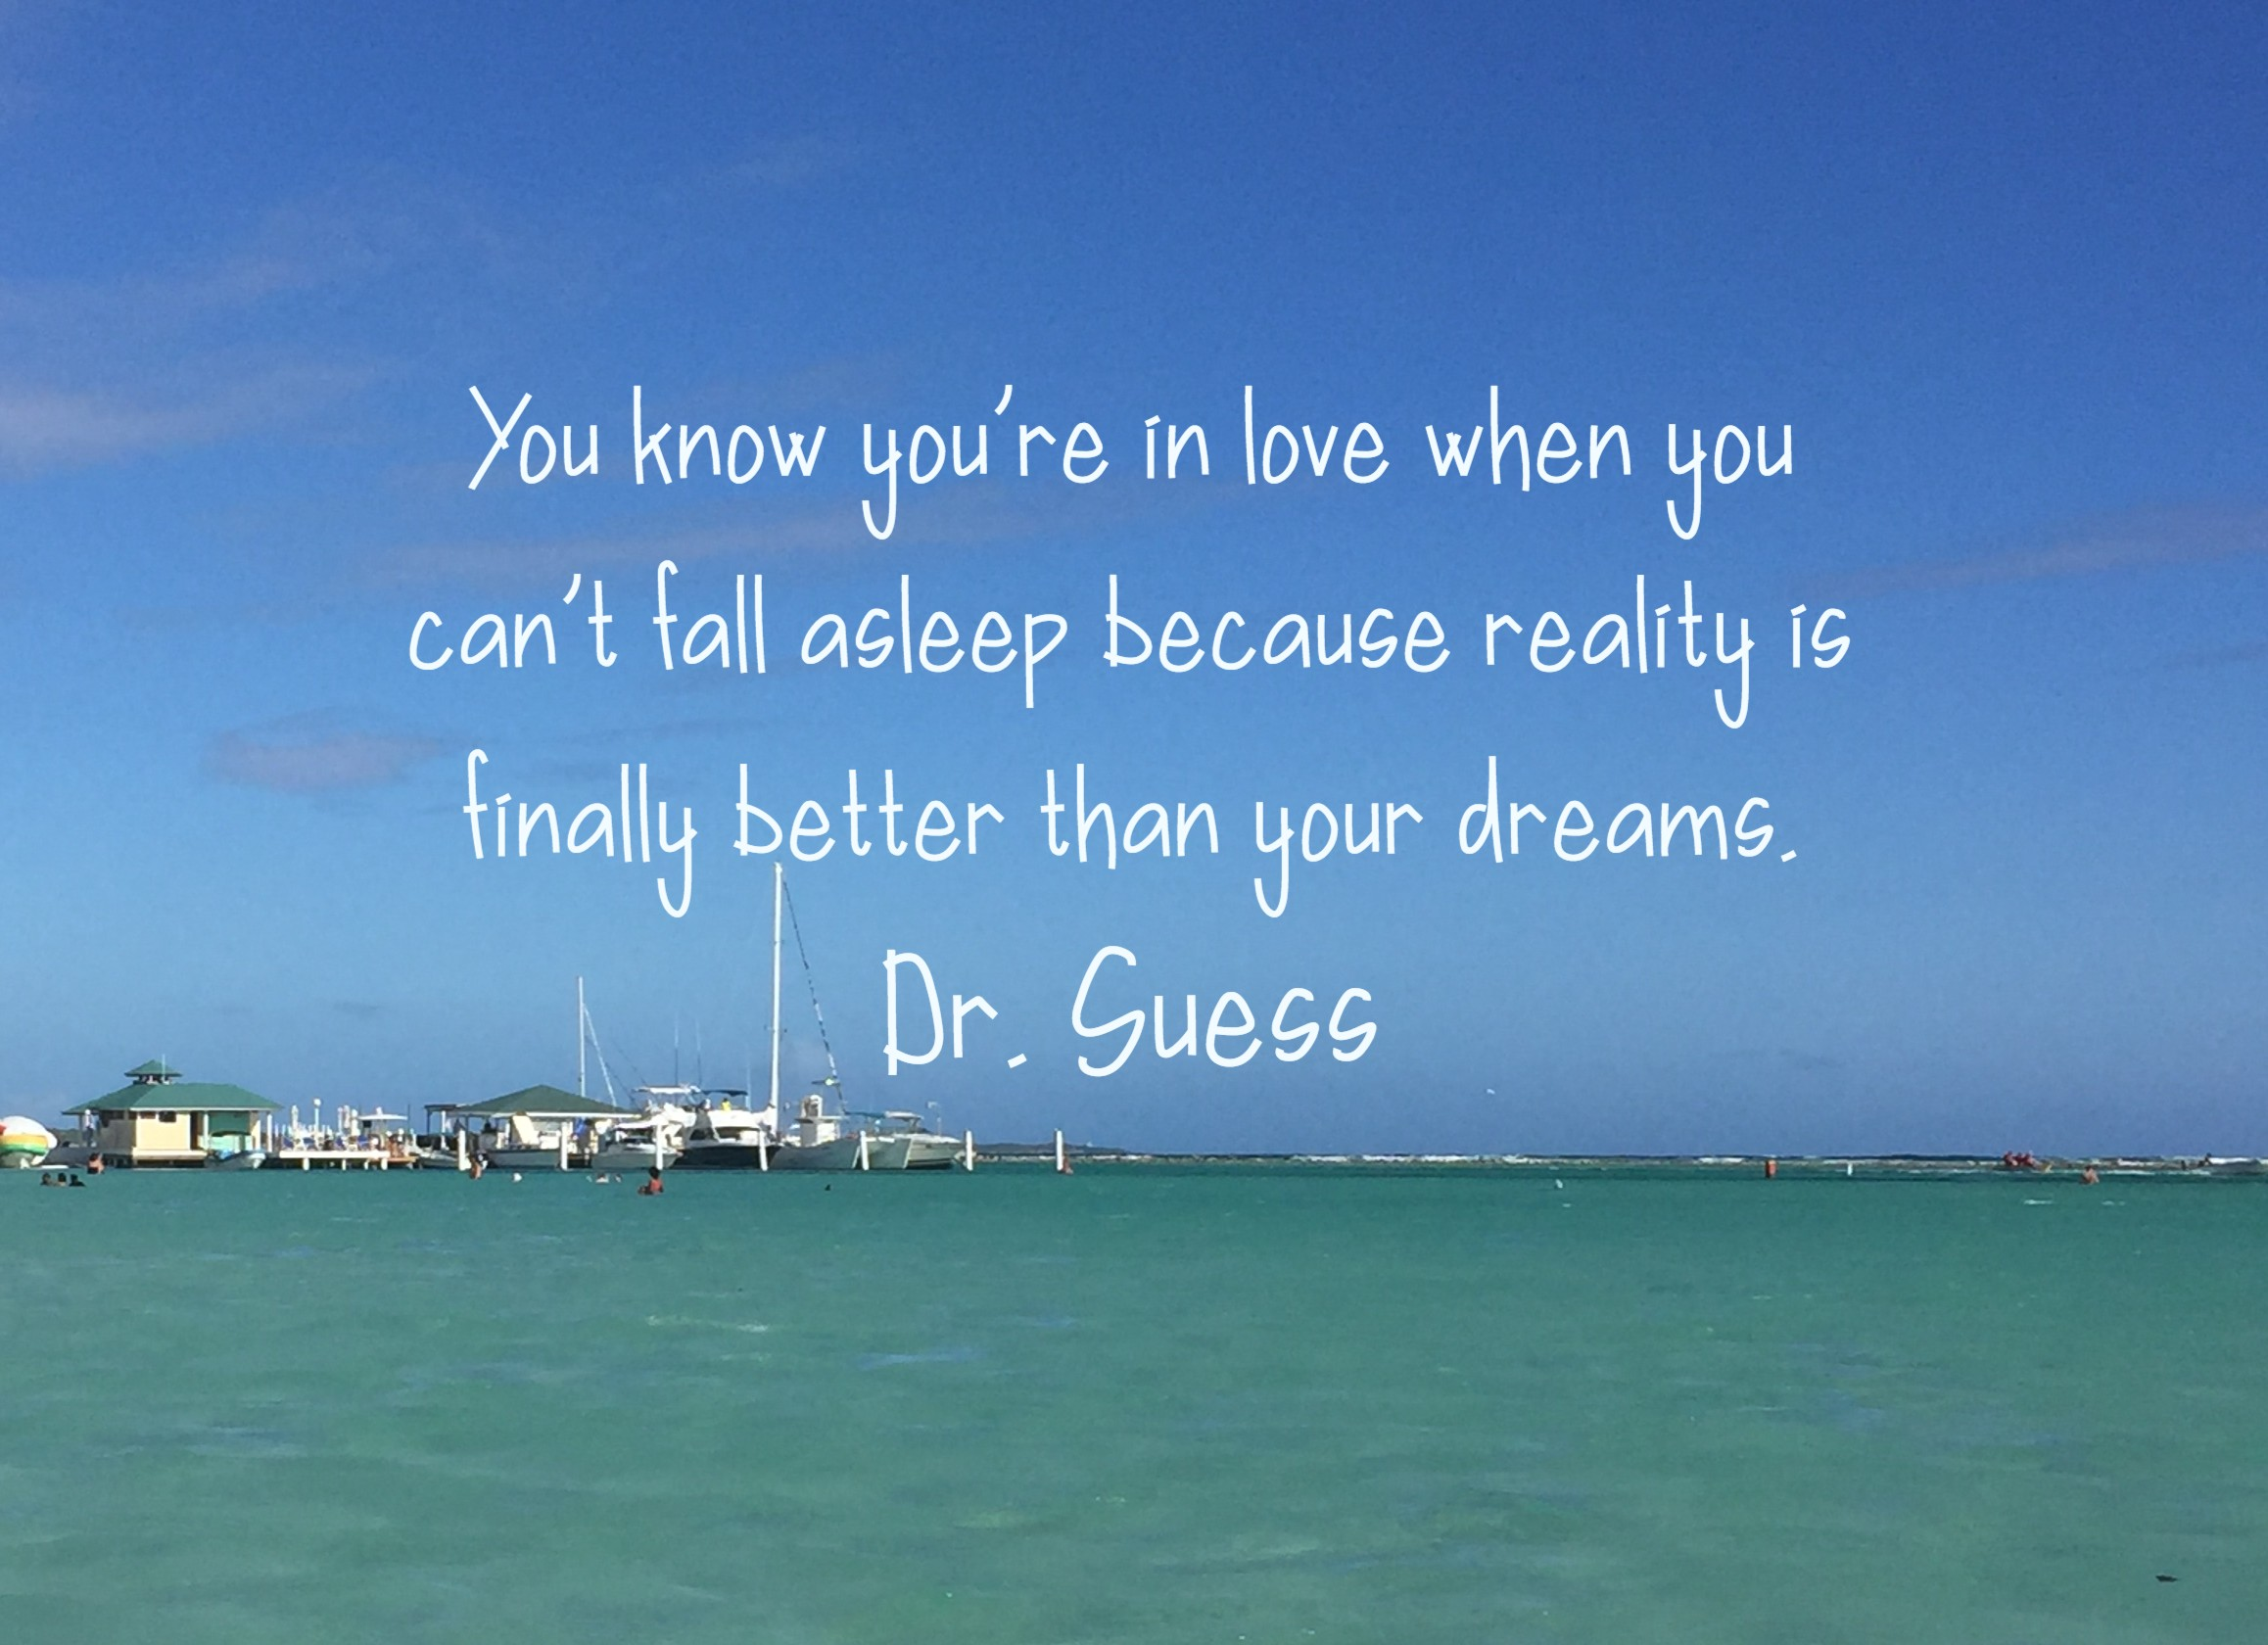 You know you're in love when you can't fall asleep because reality is finally better than your dreams. Dr. Suess